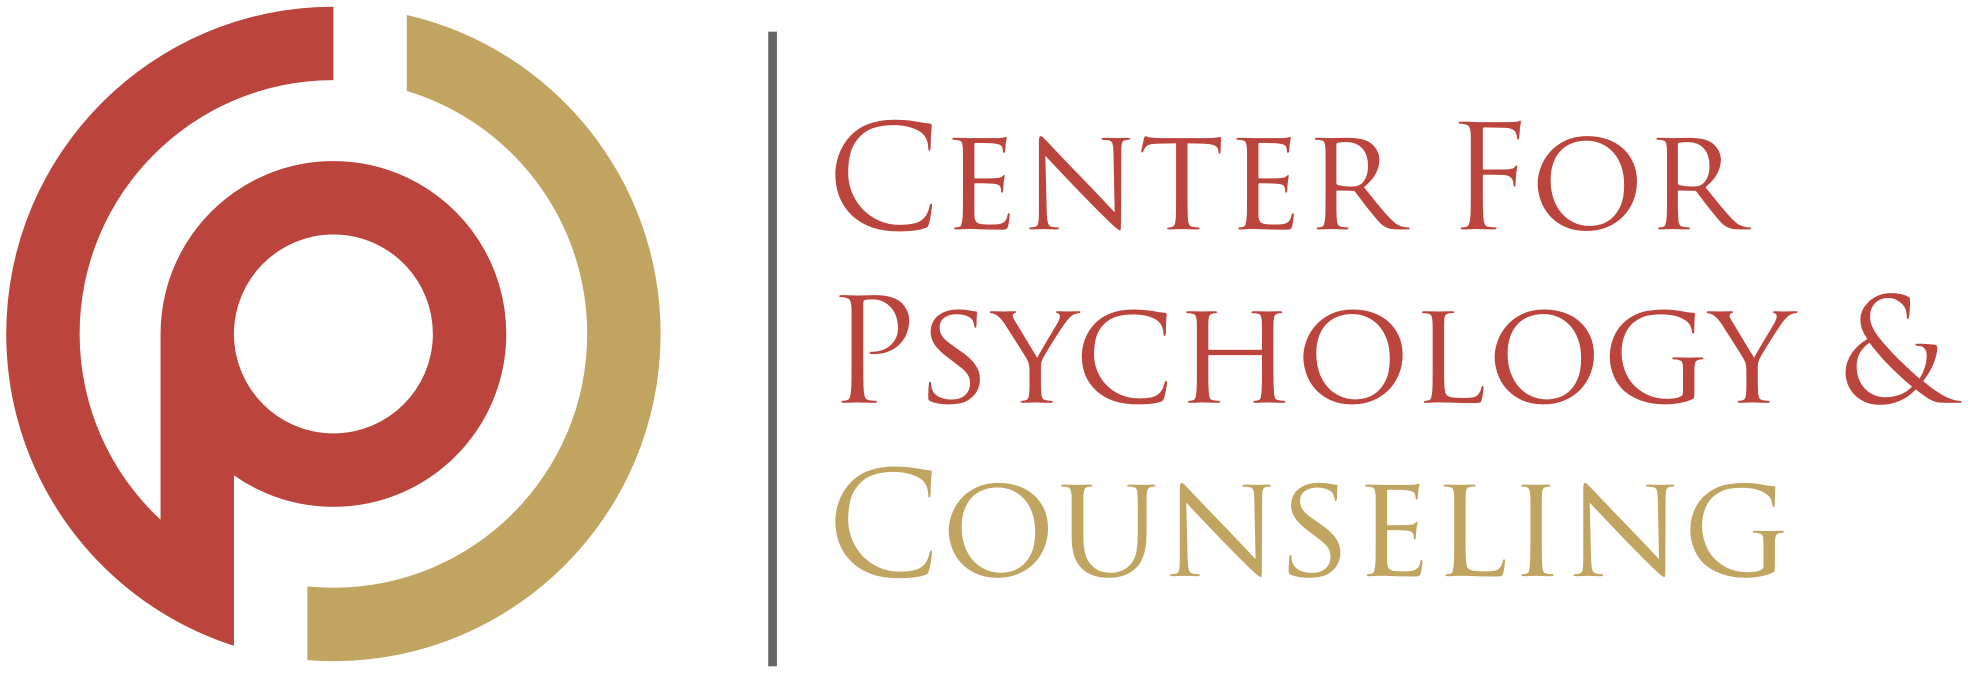 Center for Psychology & Counseling Logo